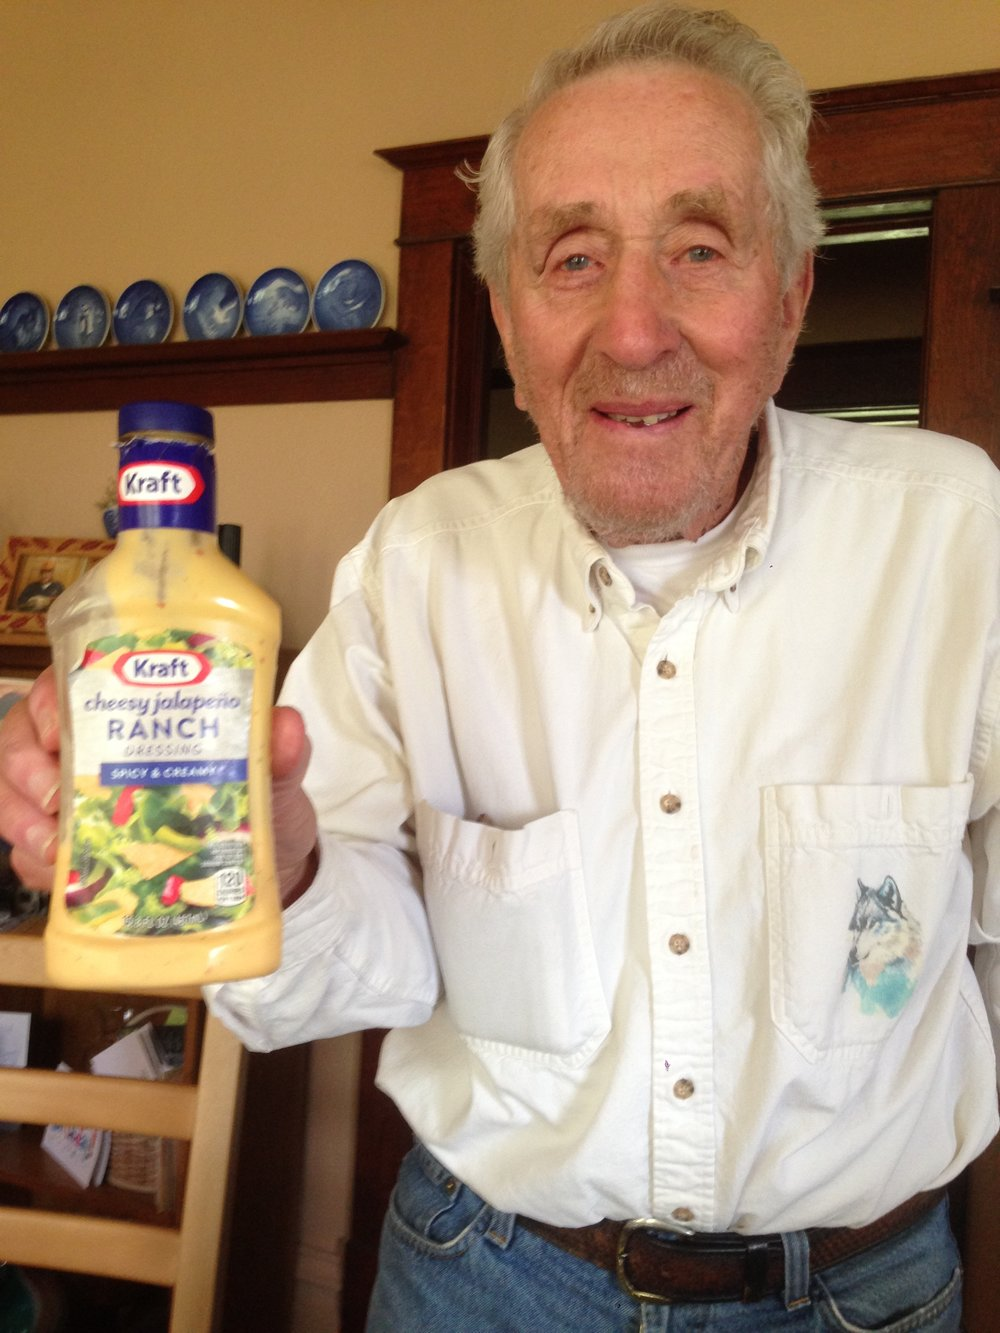 GRANDPA W JALAPENO RANCH